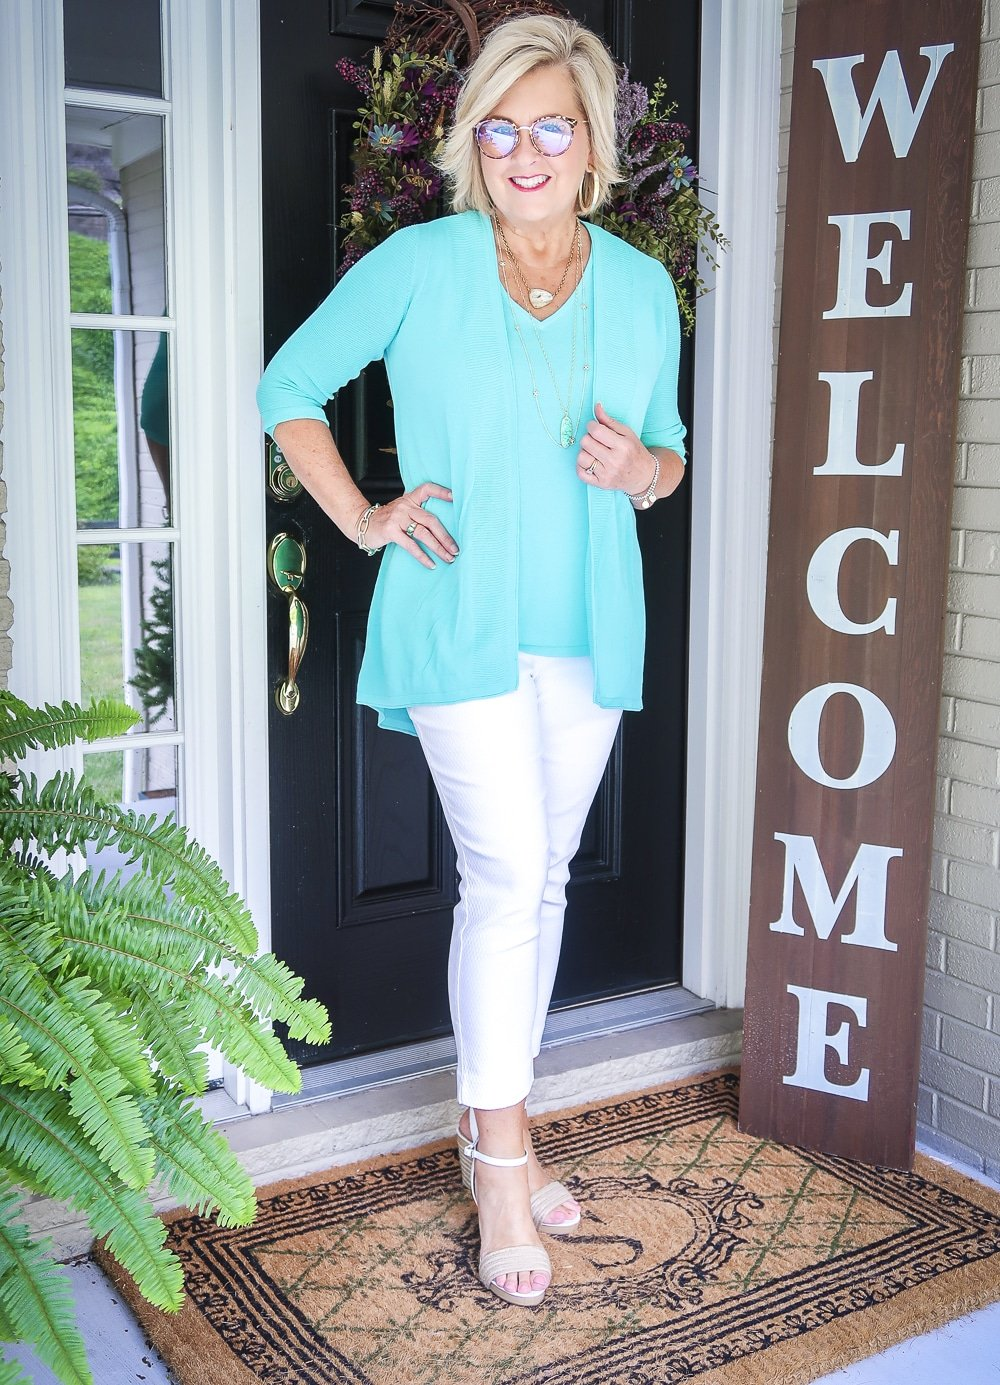 Fashion Blogger 50 Is Not Old is wearing glasses and a matching sweater set in Aqua, white crop pants, gold jewelry from Kendra Scott, and white espadrilles